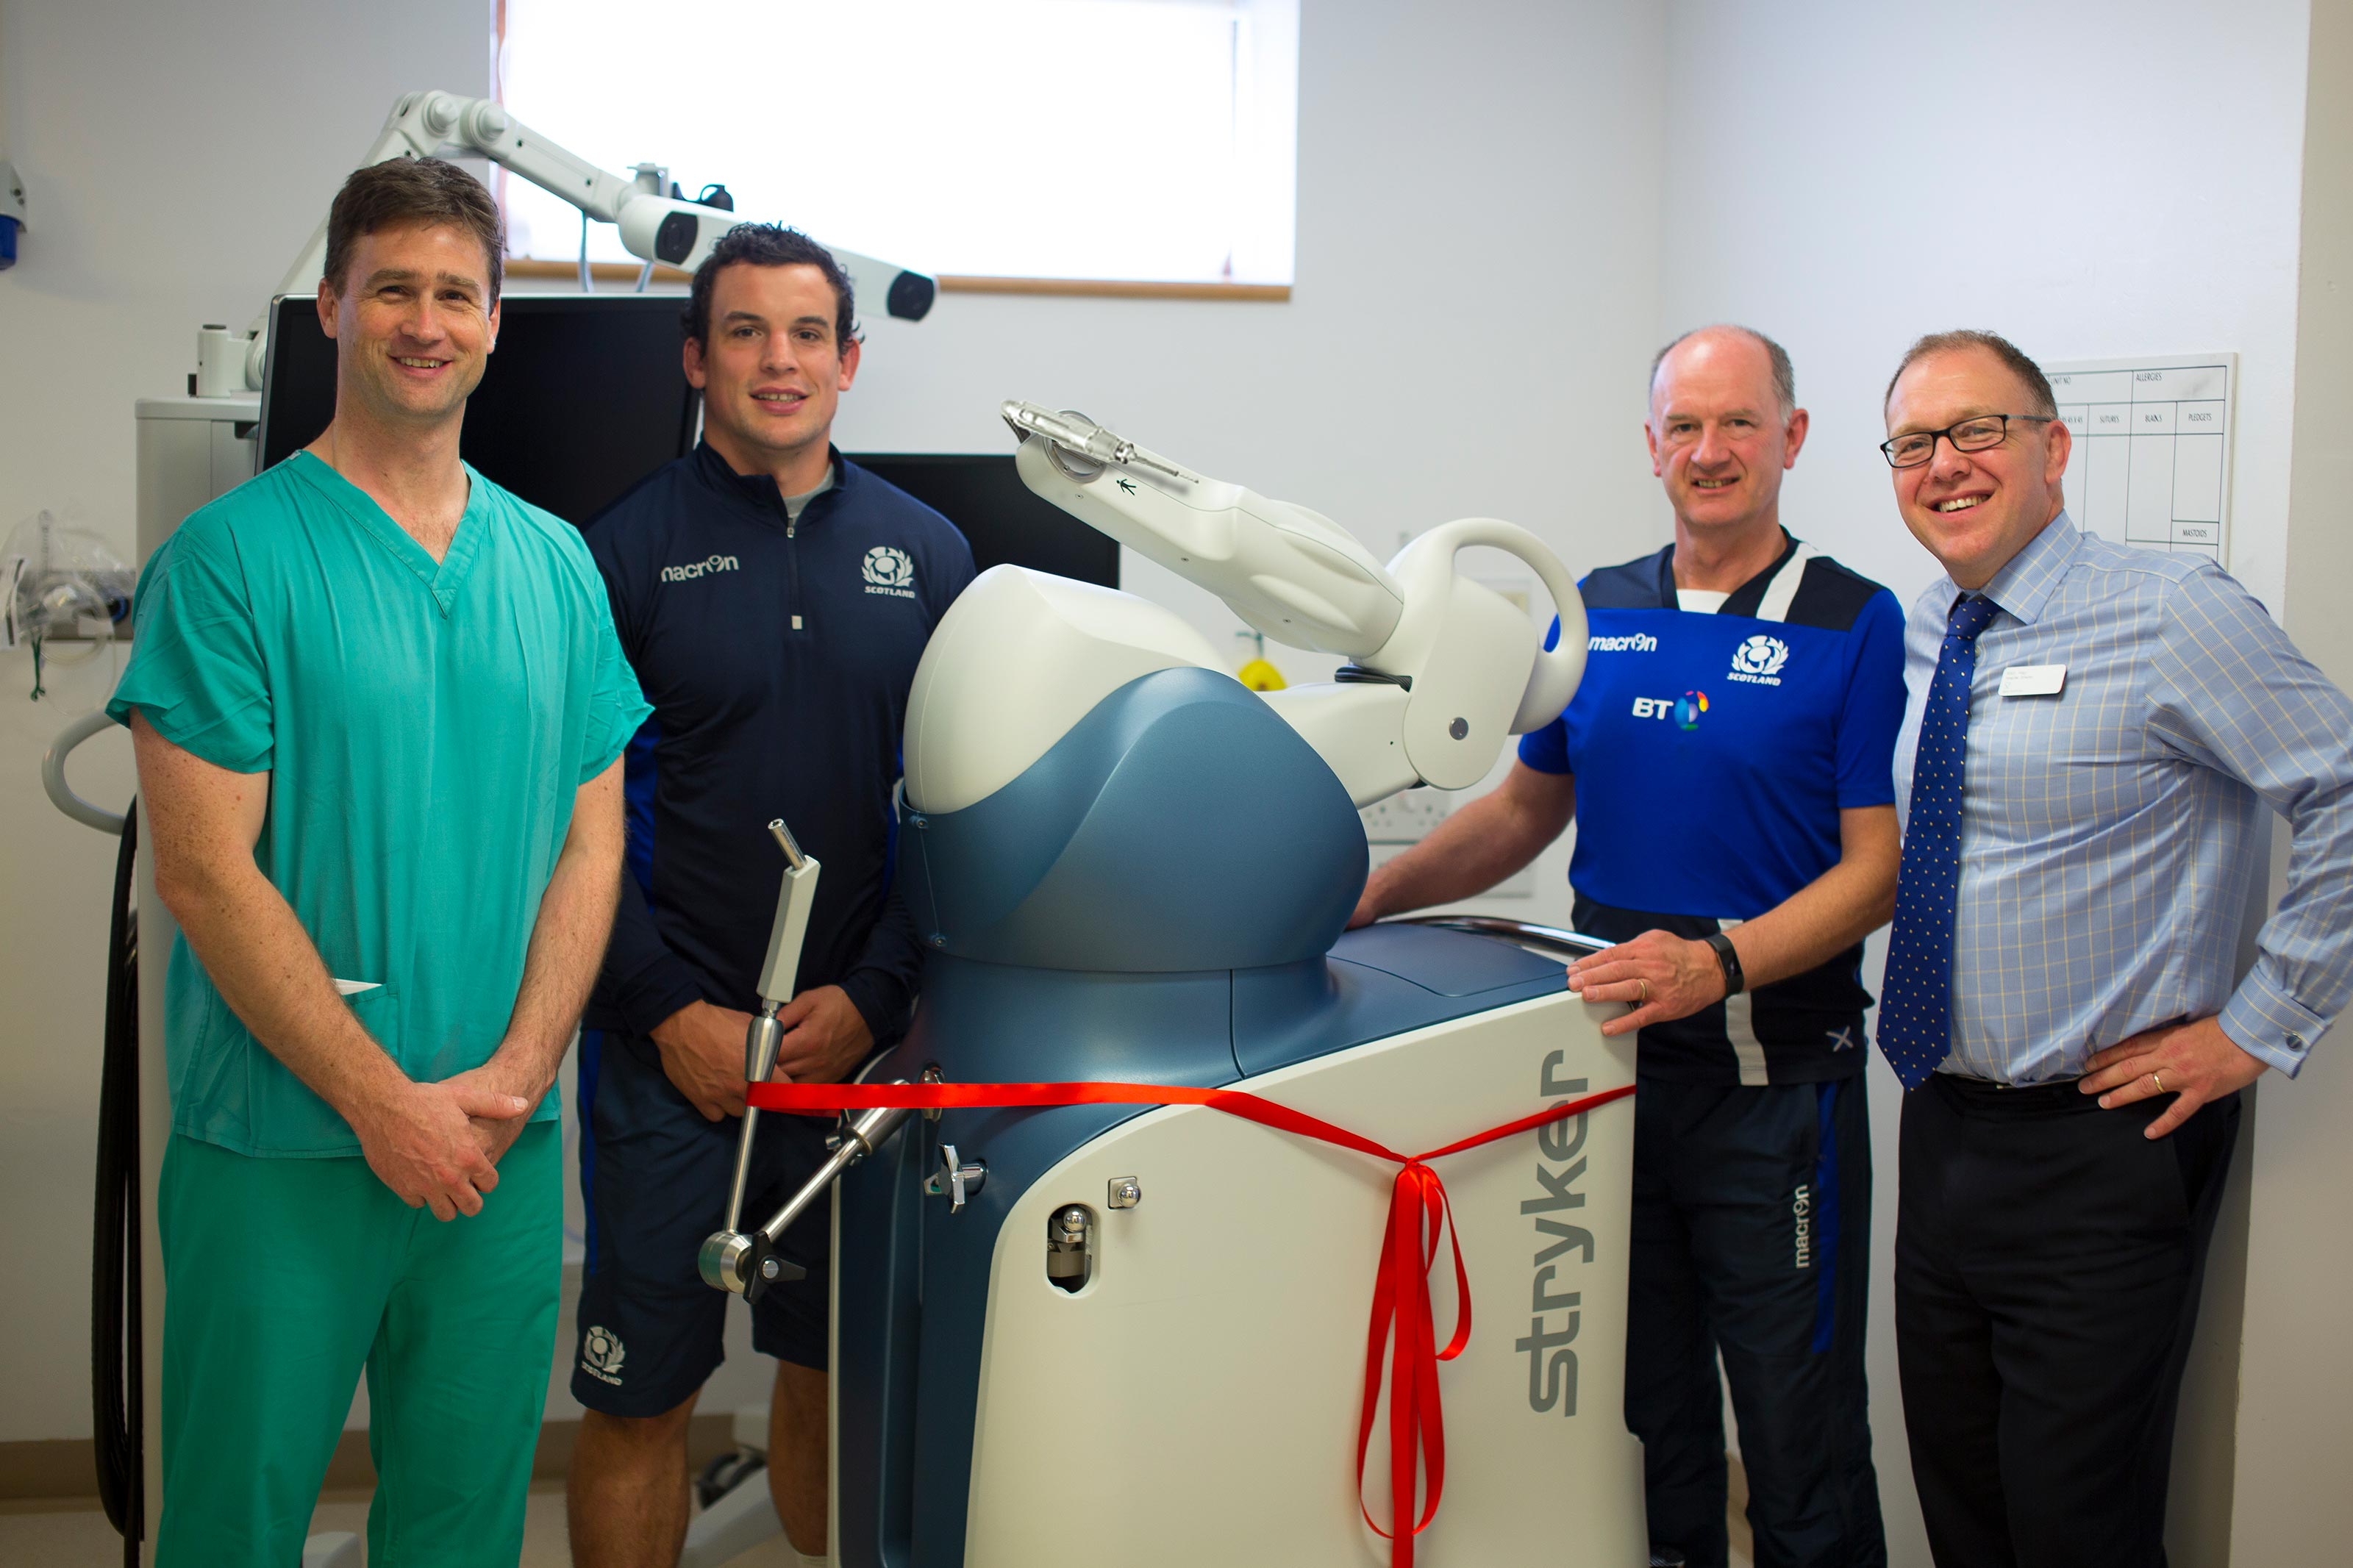 Scottish Rugby open country's first hip and knee replacement robot